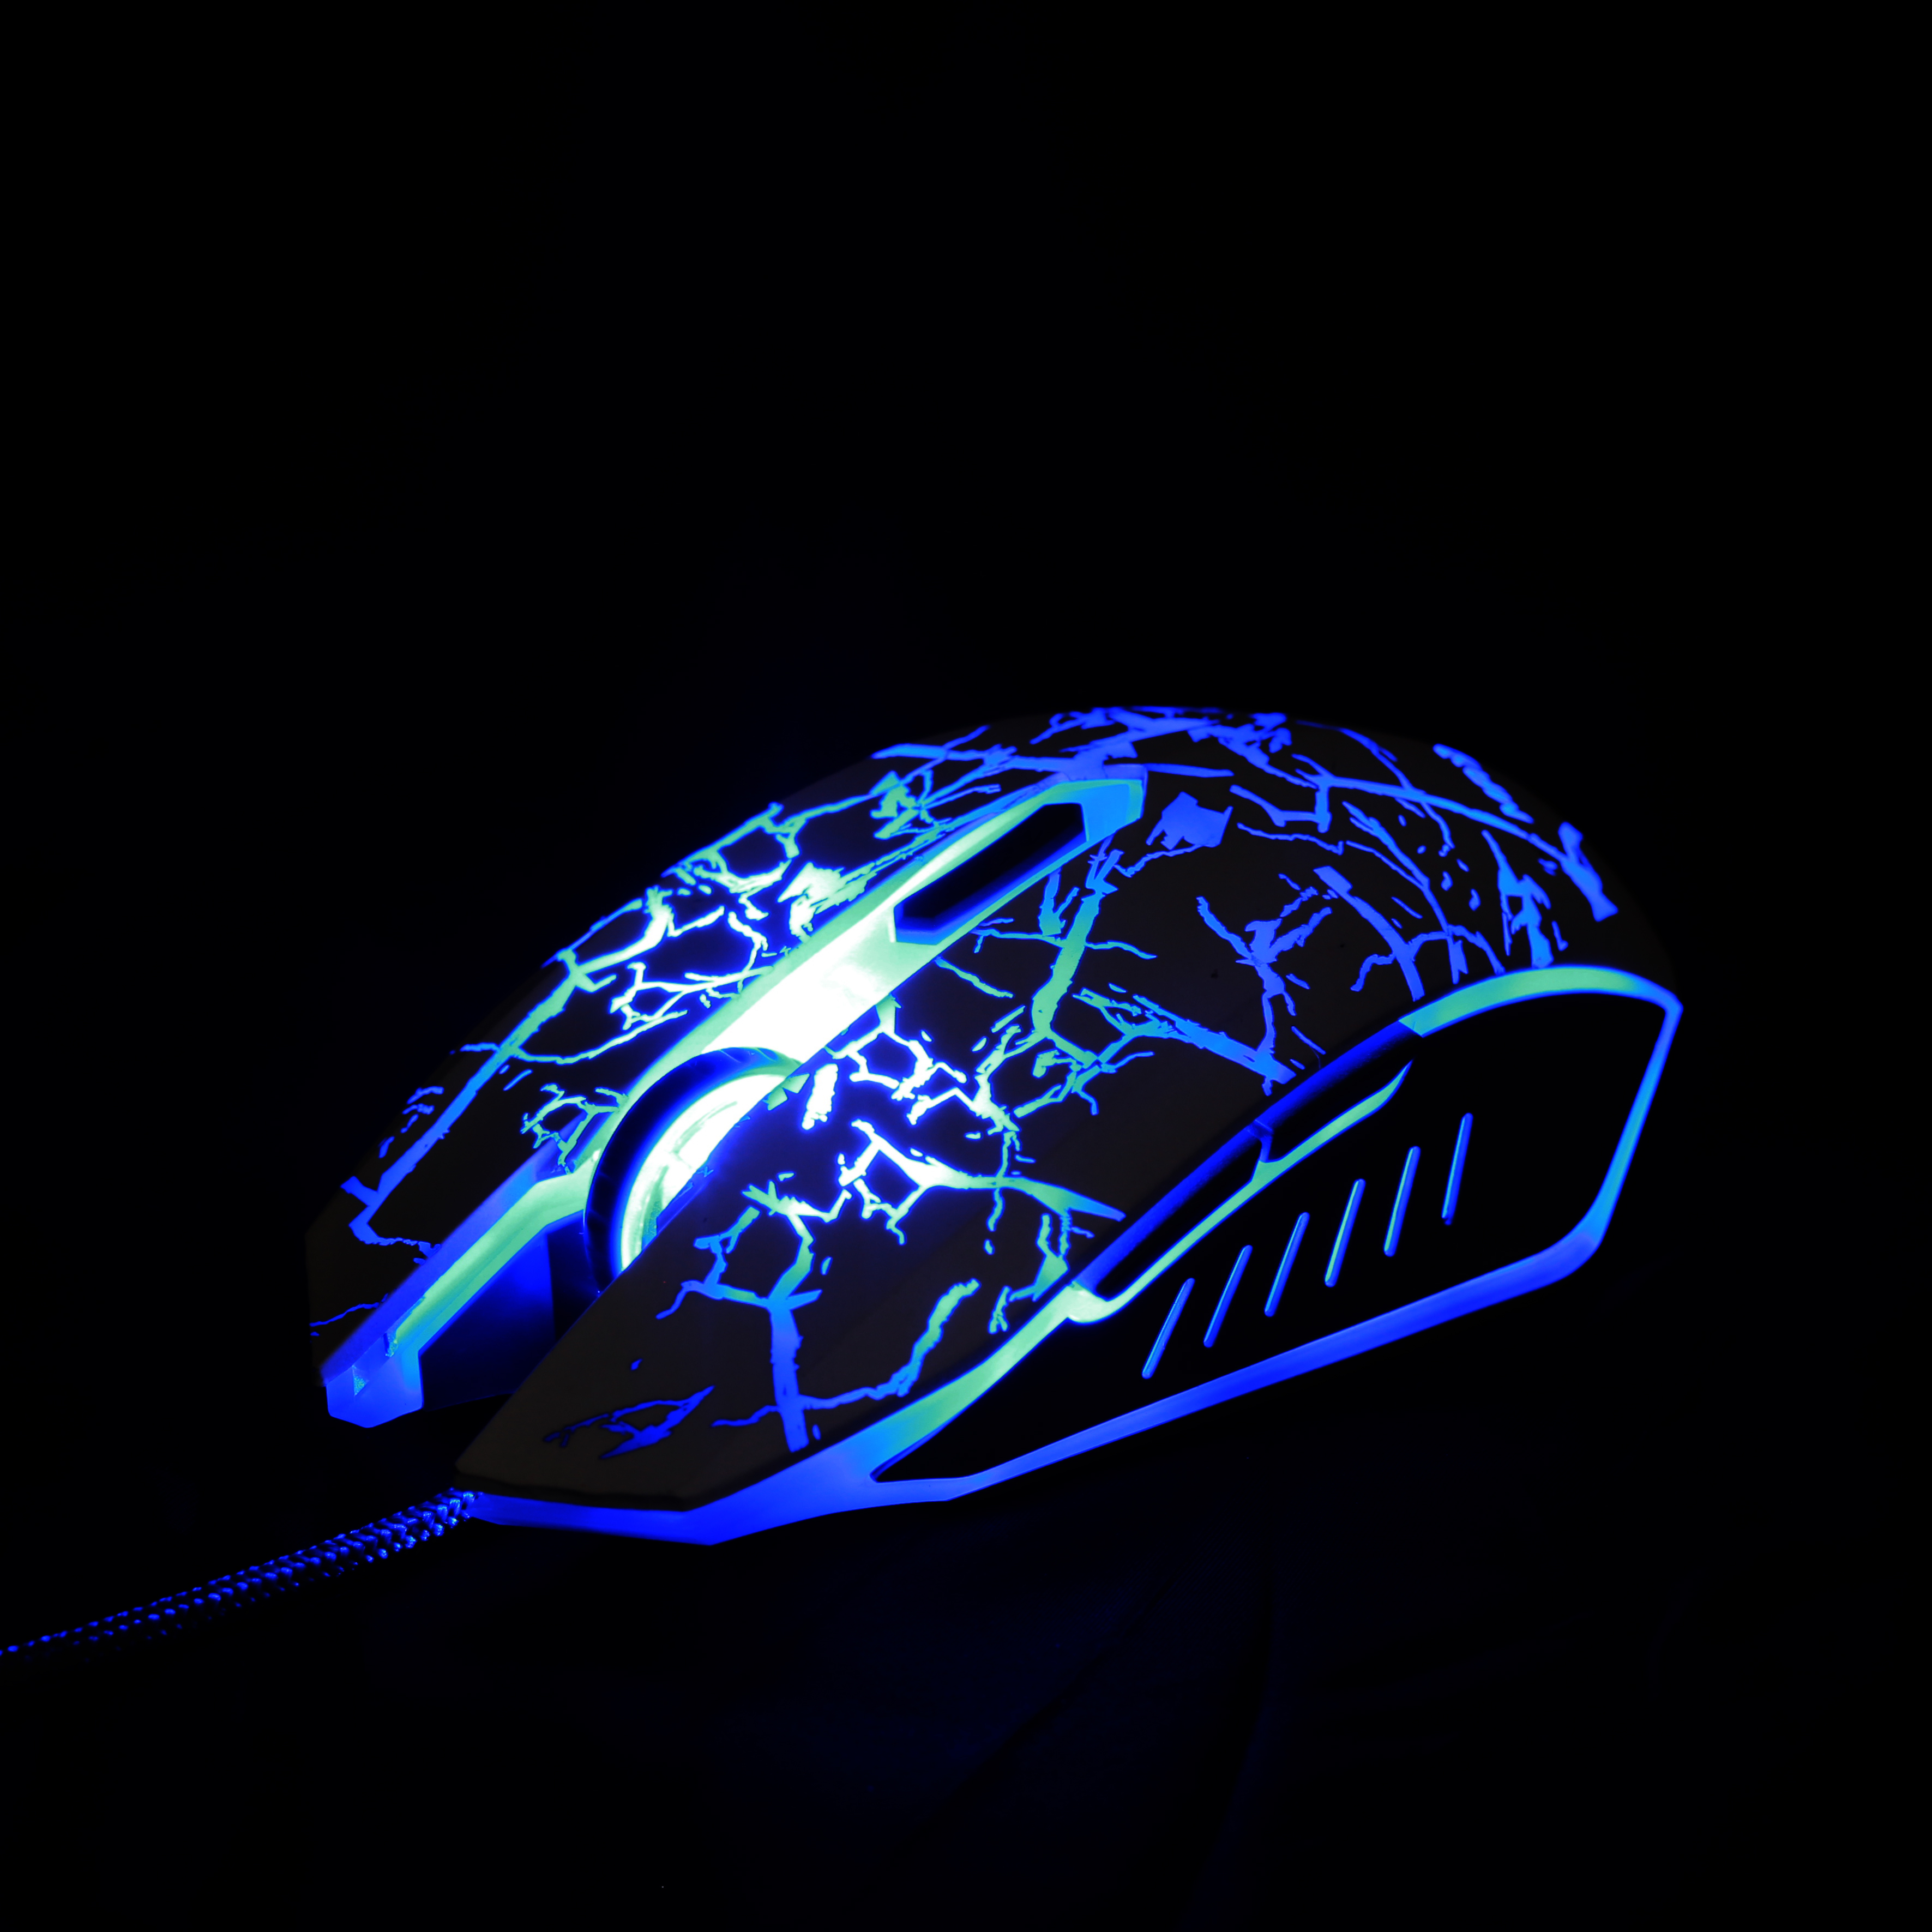 Usb Gaming Mouse Mixed Colors Act Wgm Crl